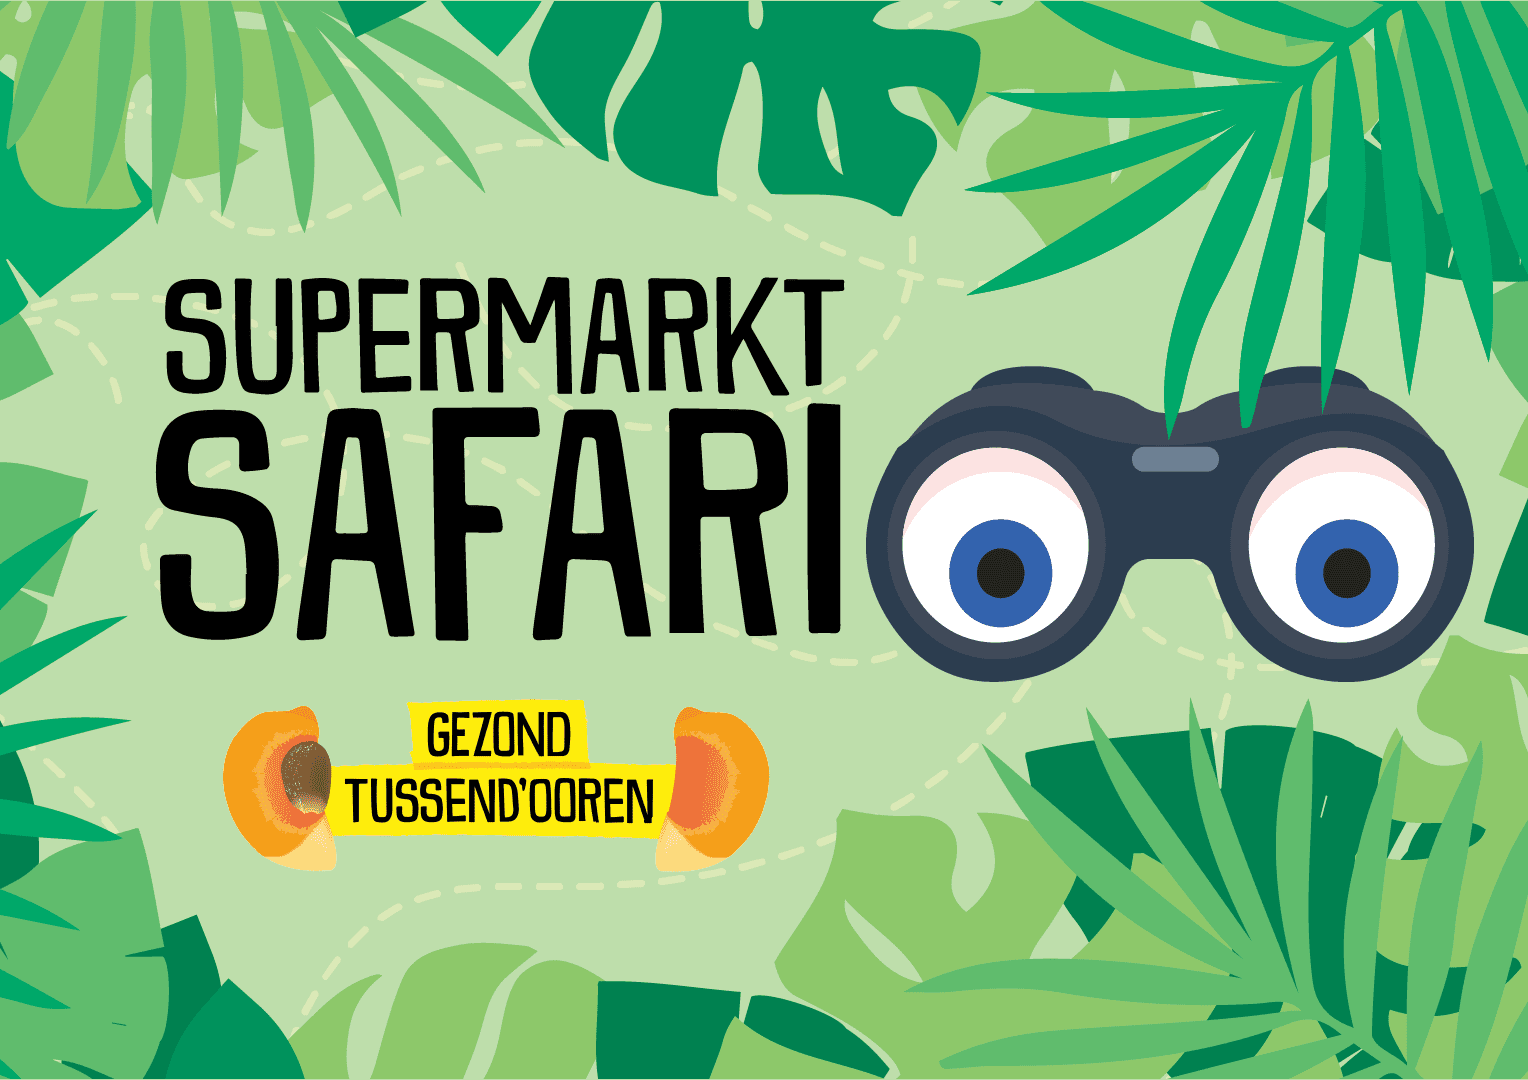 Supermarkt Safari - Stichting WIEL